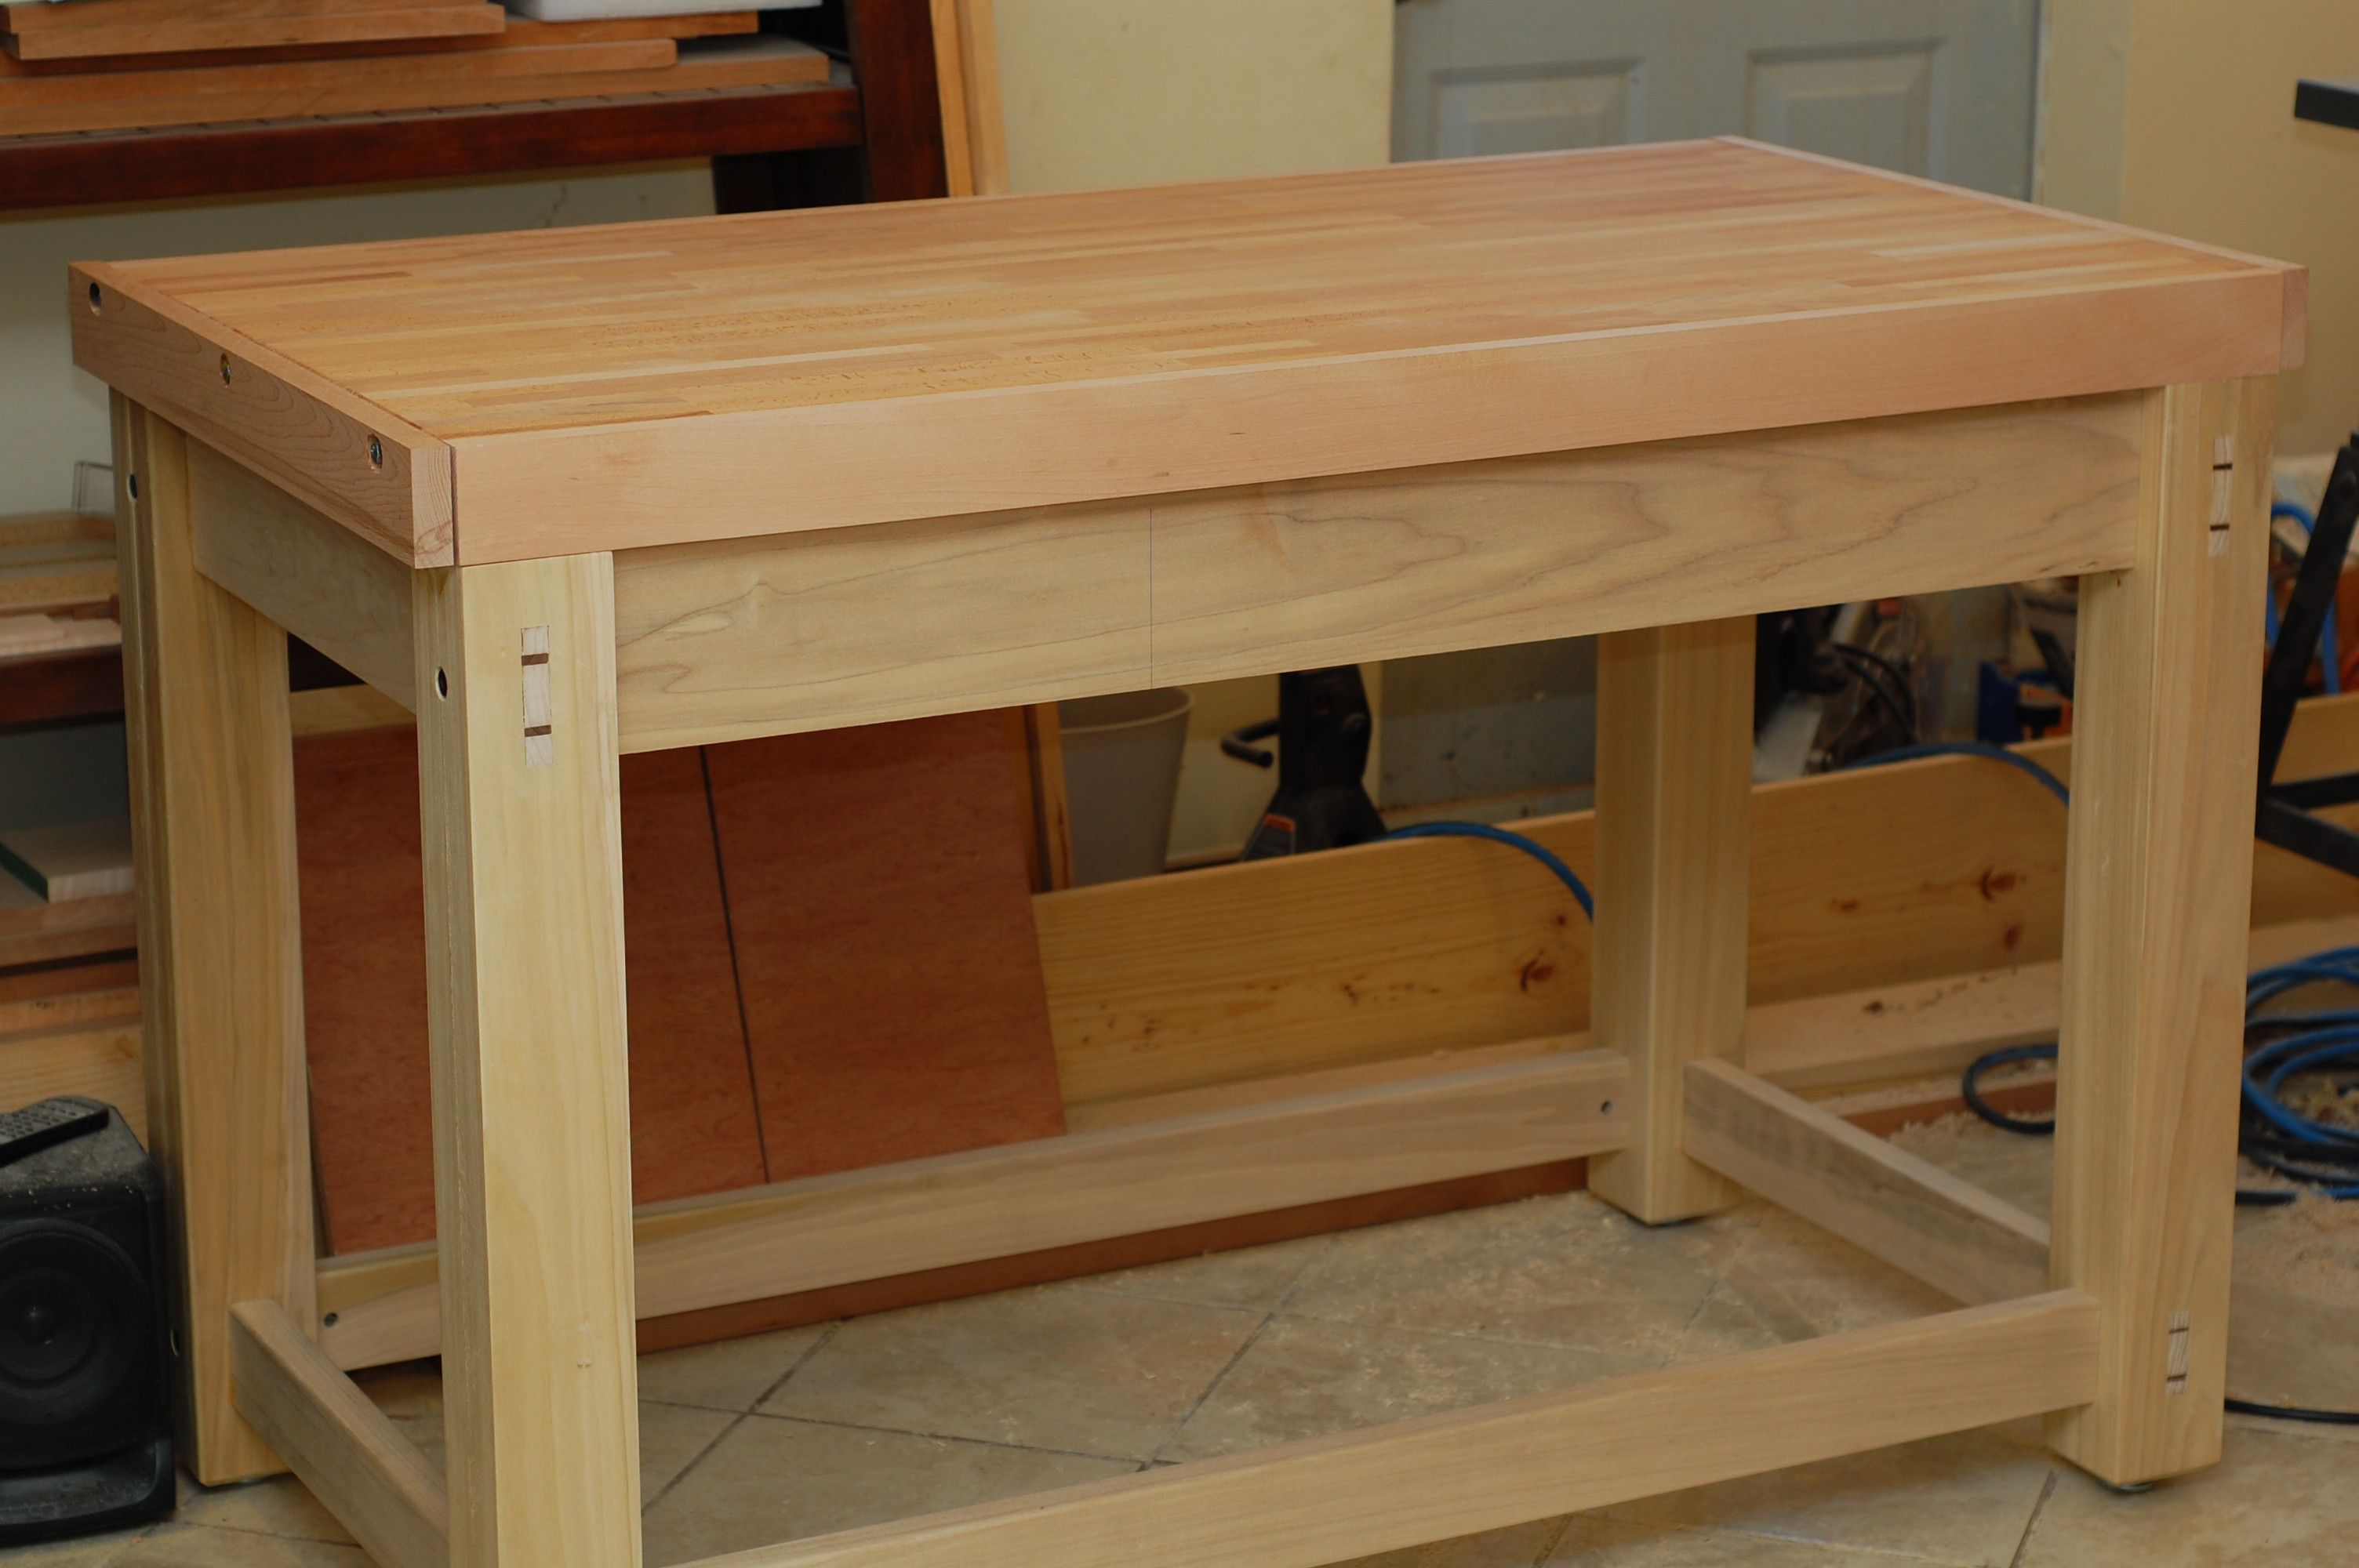 Best ideas about DIY Wood Work . Save or Pin Workbench Cross Grain Now.